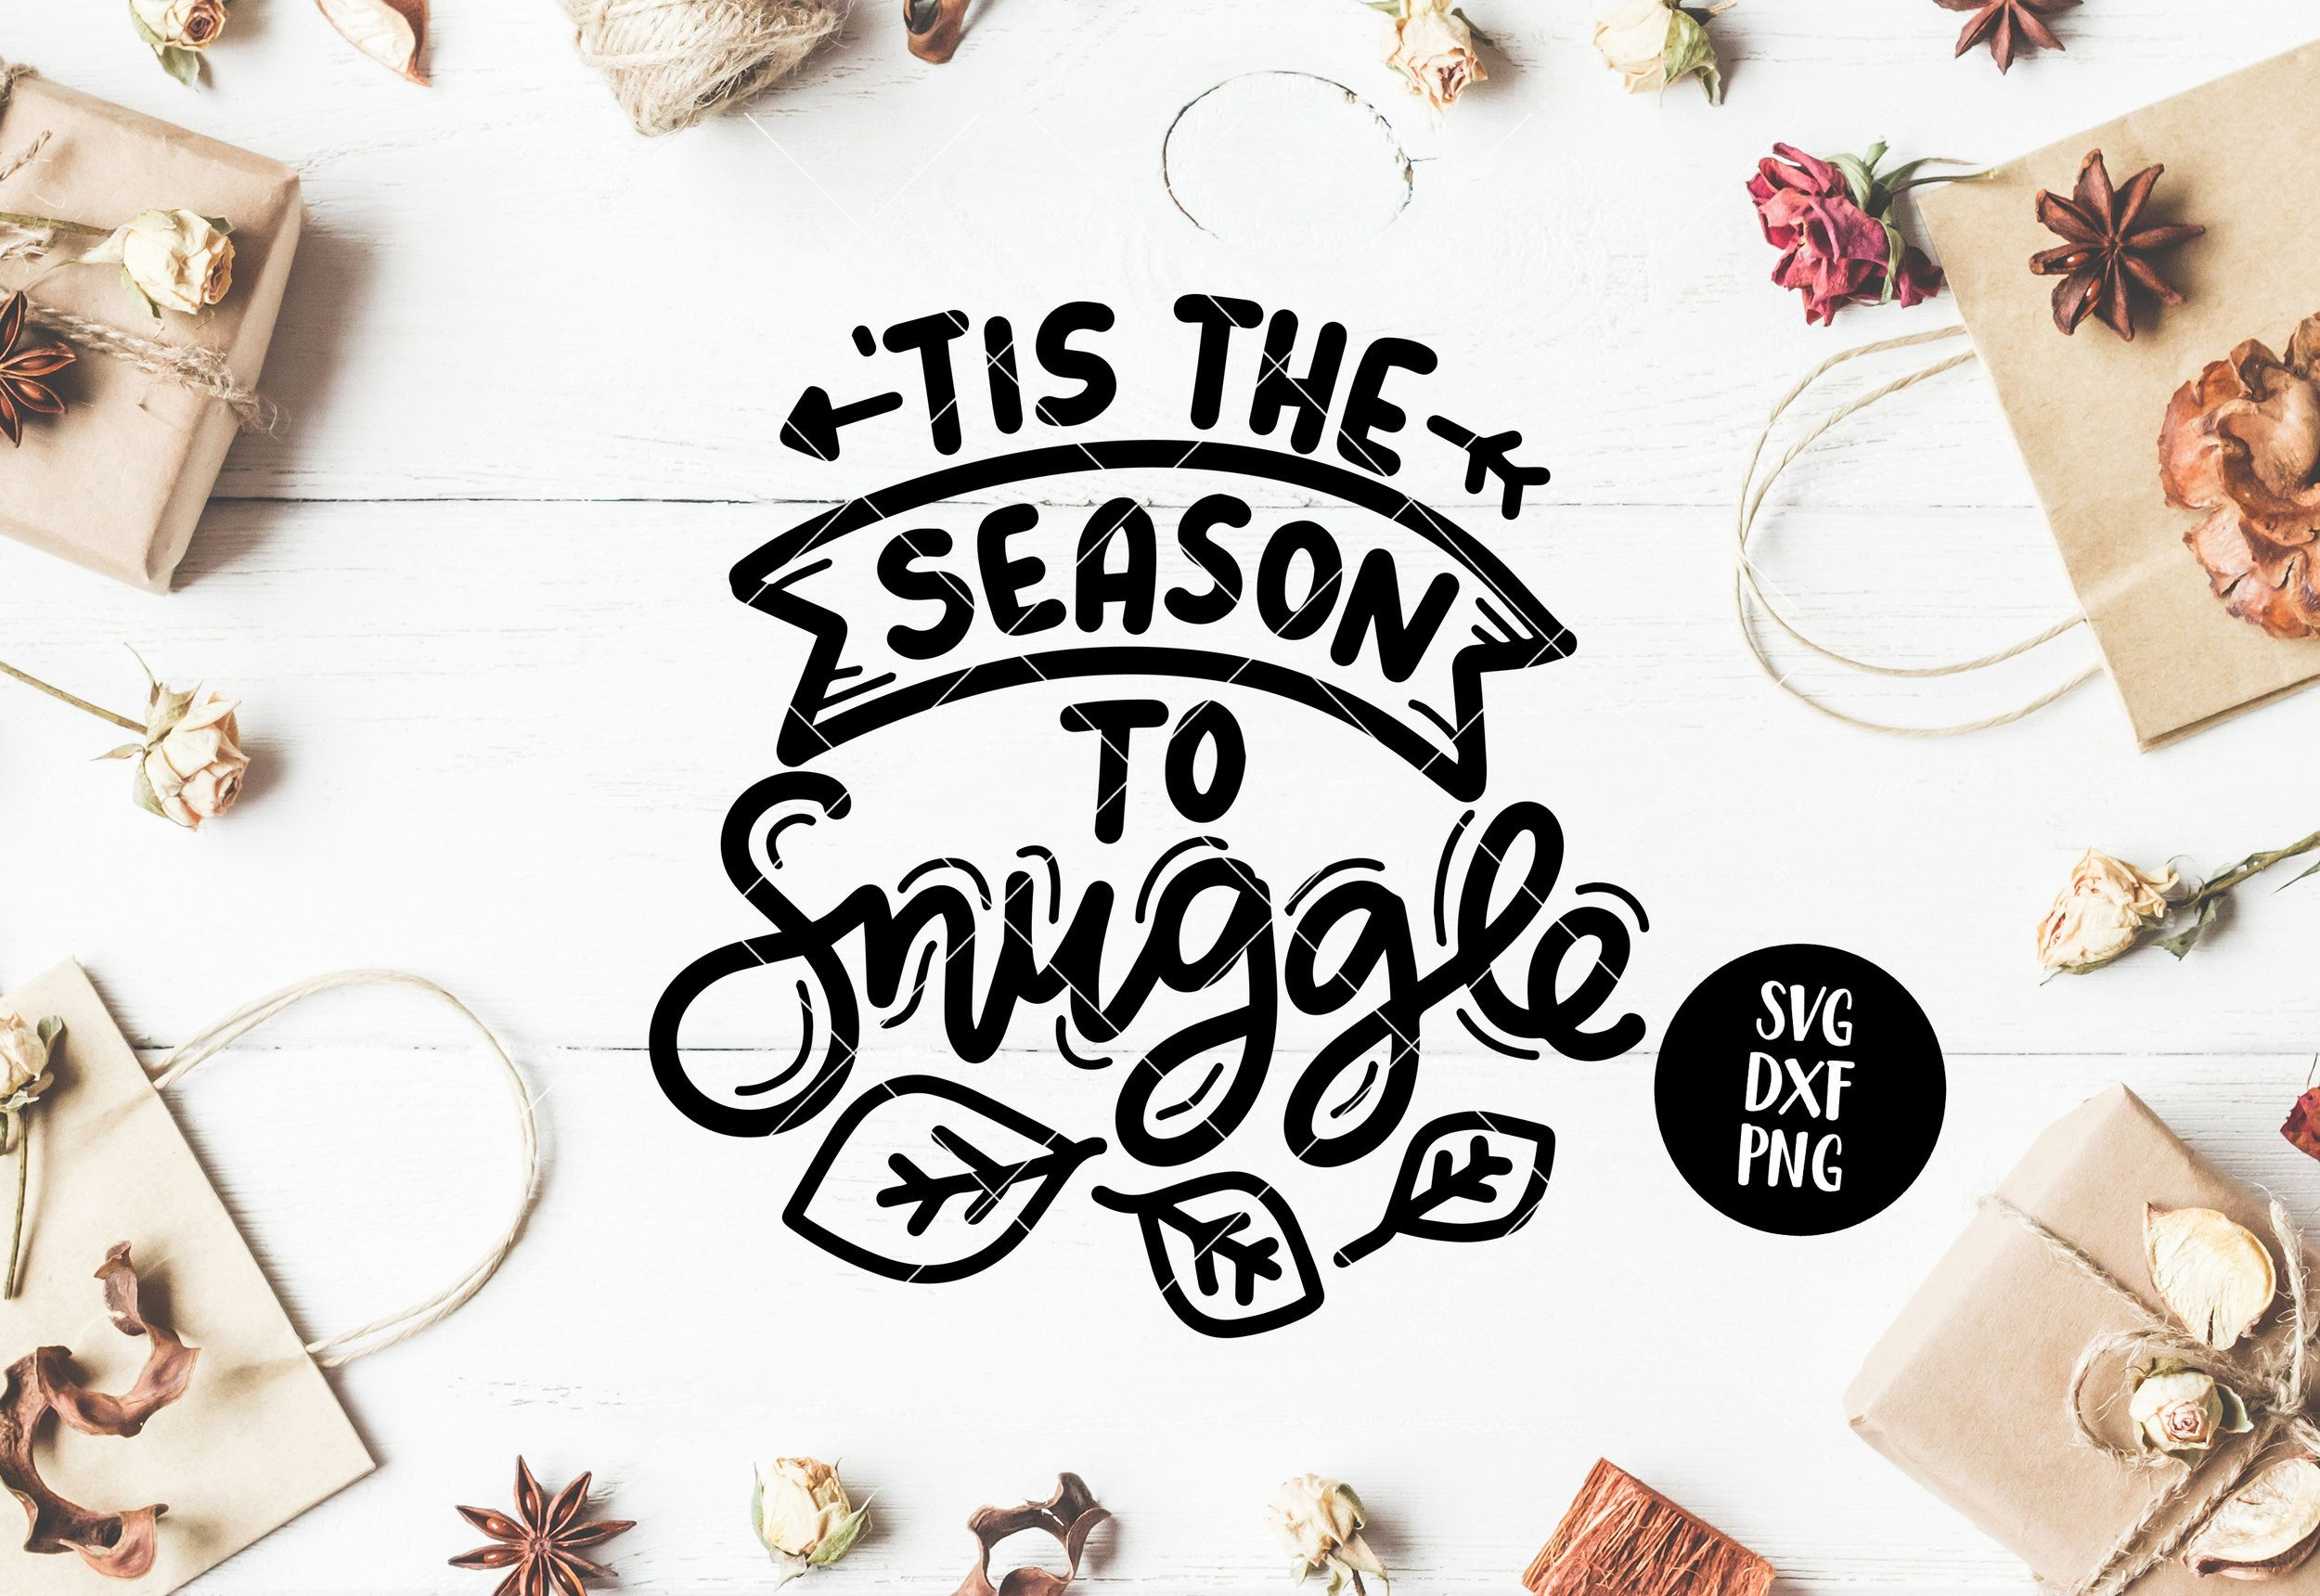 Tis The Season To Snuggle Hand Lettered Autumn Fall Quote Svg Svg Dxf And Png Files Included Hand Lettering Autumn Quotes Tis The Season